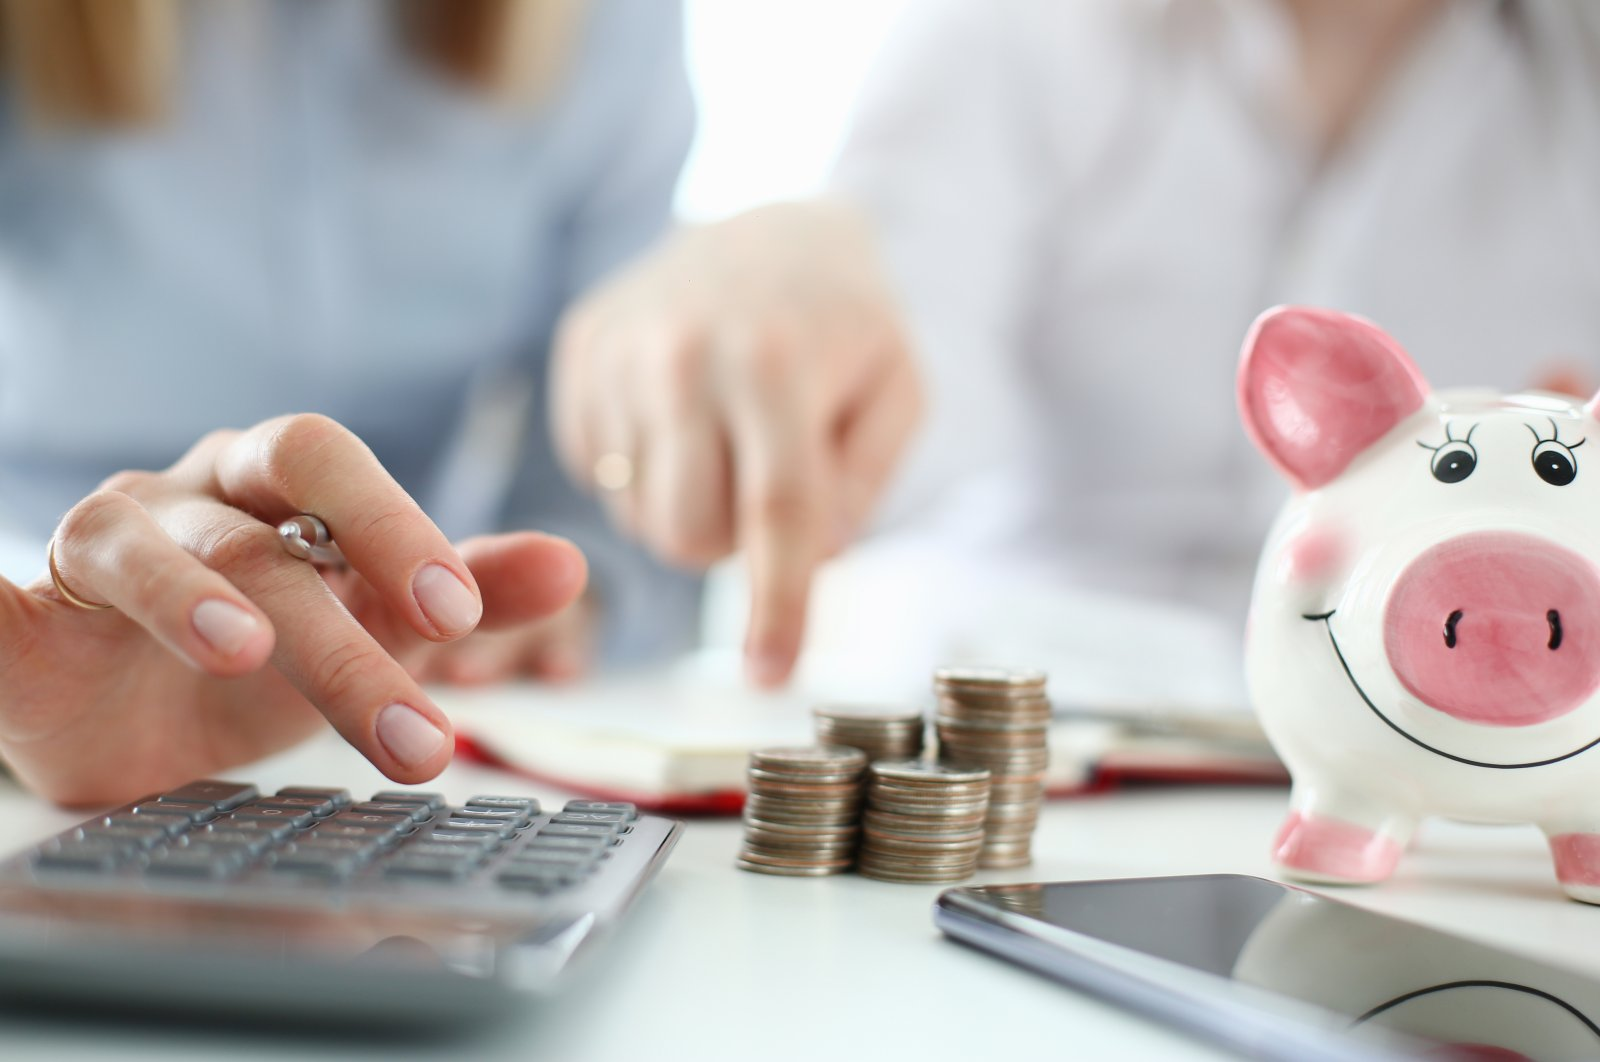 Don't let your debts get out of control and try to monitor your spending during difficult times. (iStock Photo)